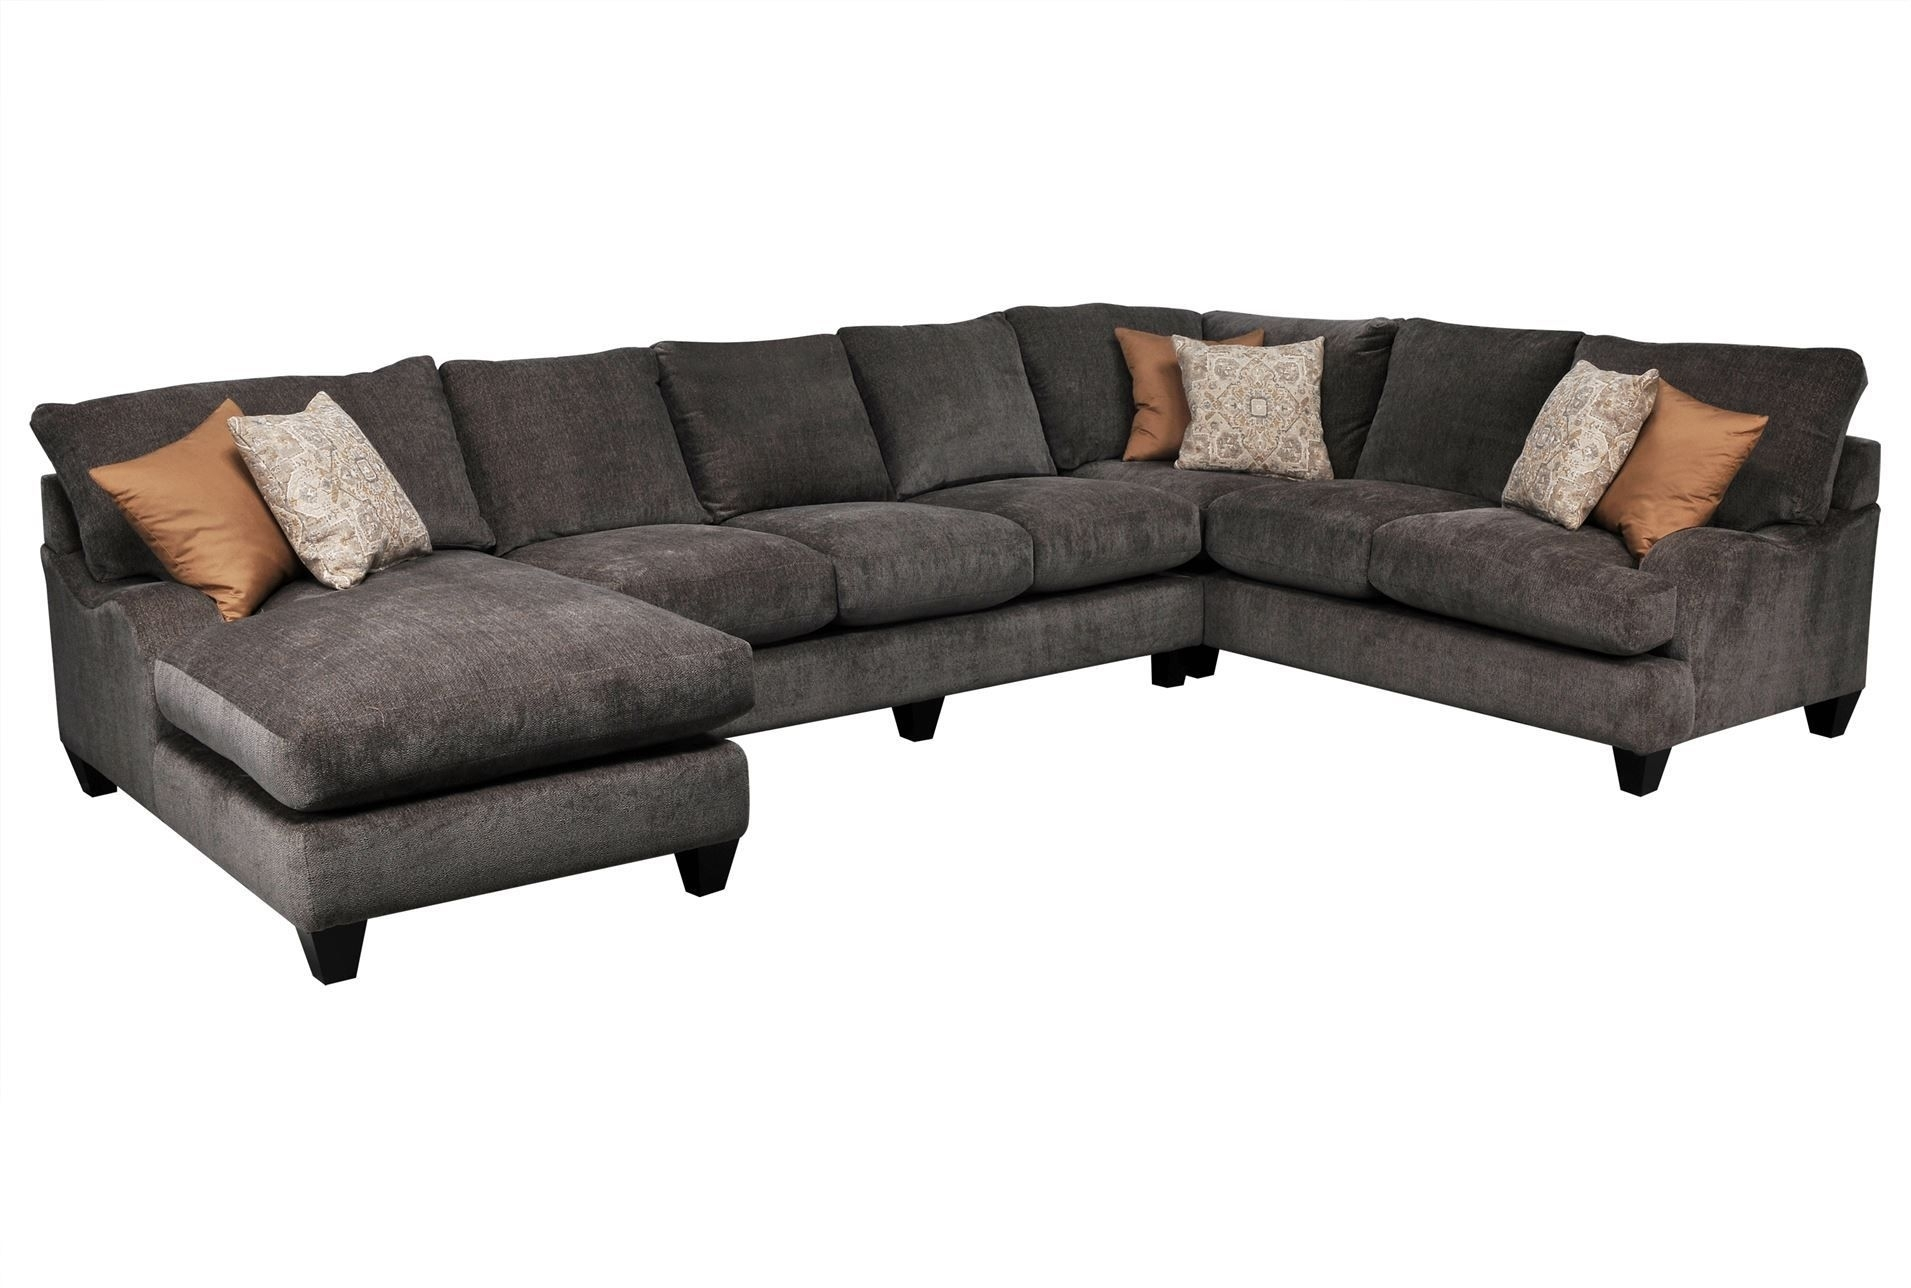 Pryce 3 Piece Sectional W/laf Chaise – Signature (2 Chaise) | A Intended For Homemakers Sectional Sofas (View 4 of 10)